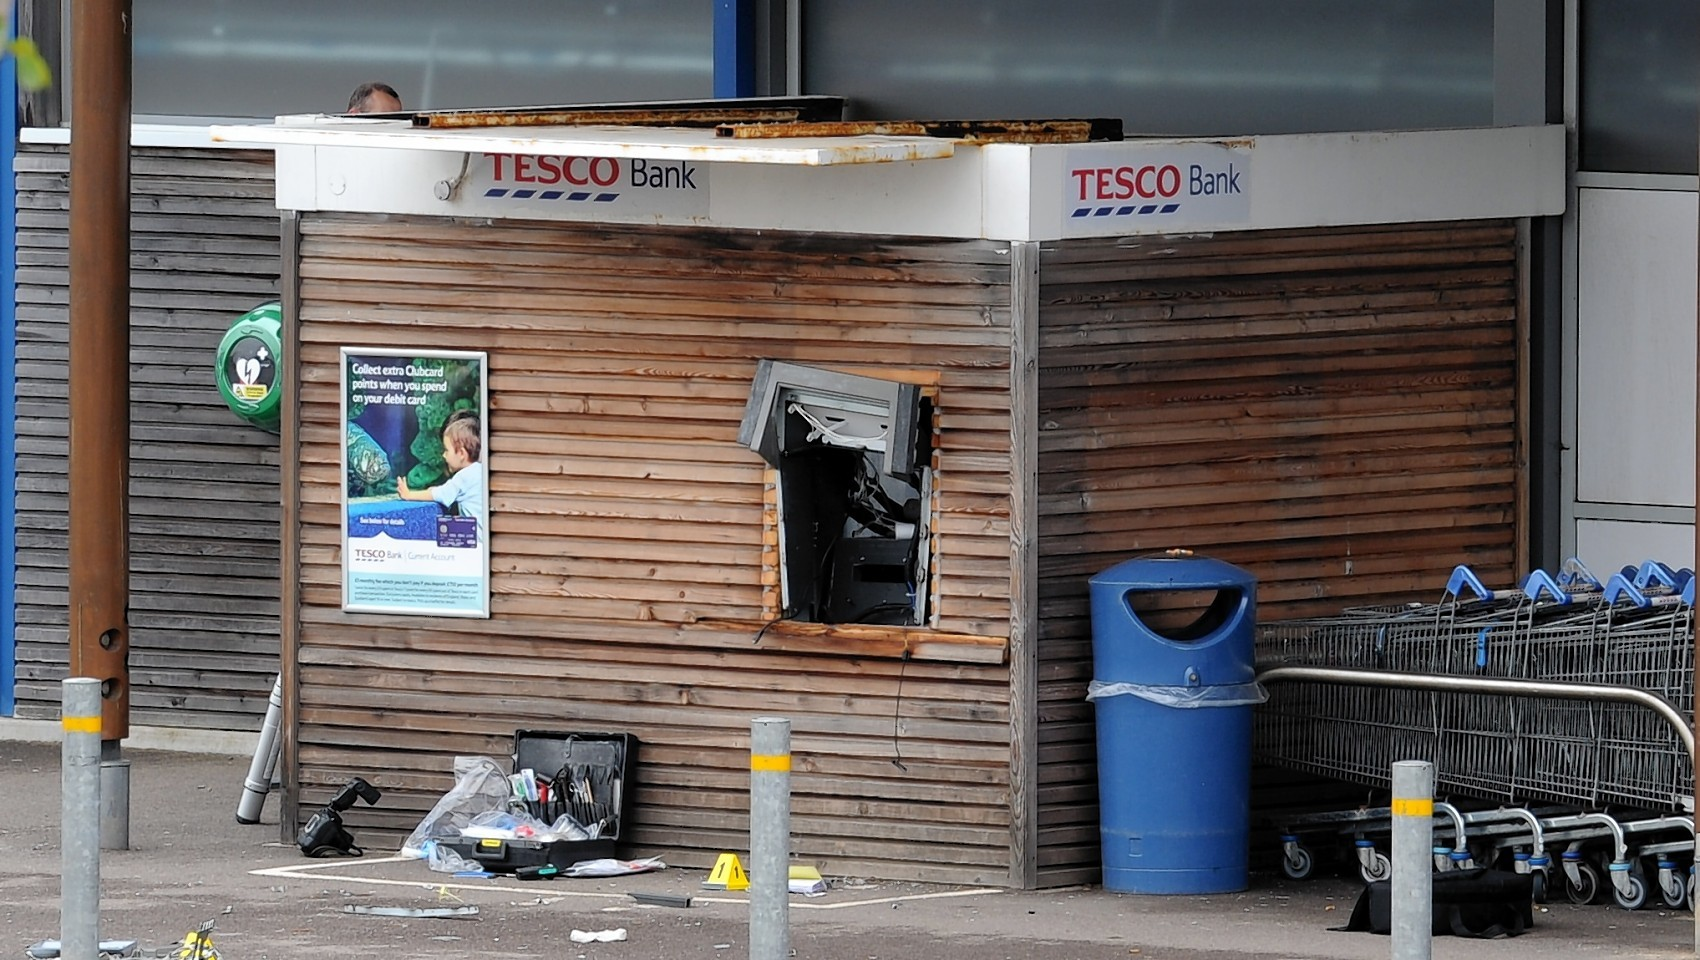 The ATM bank machine blown up at Tesco in Newtonhill